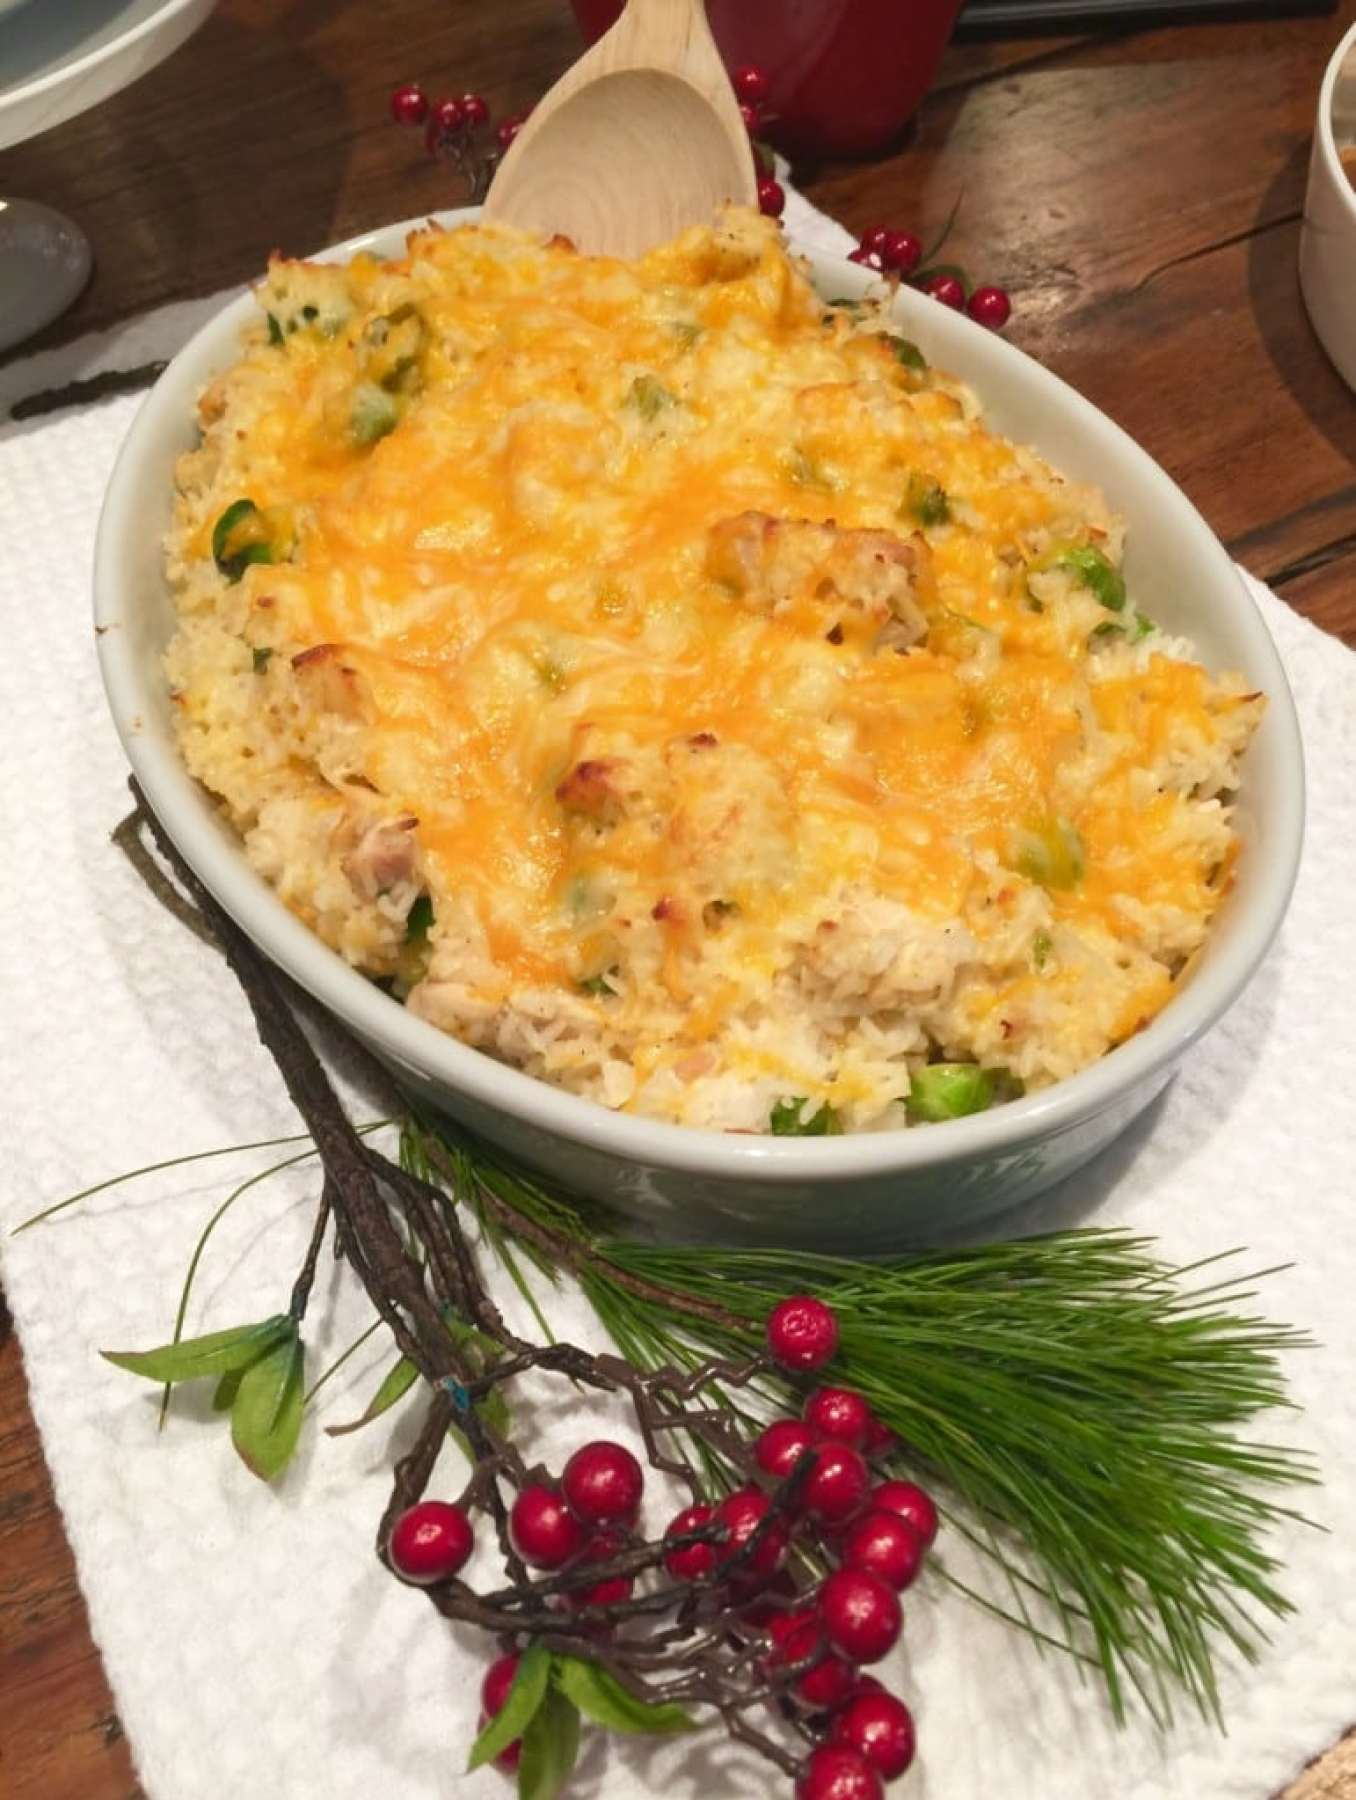 Cheesy Chicken Rice Casserole with Brussel Sprouts